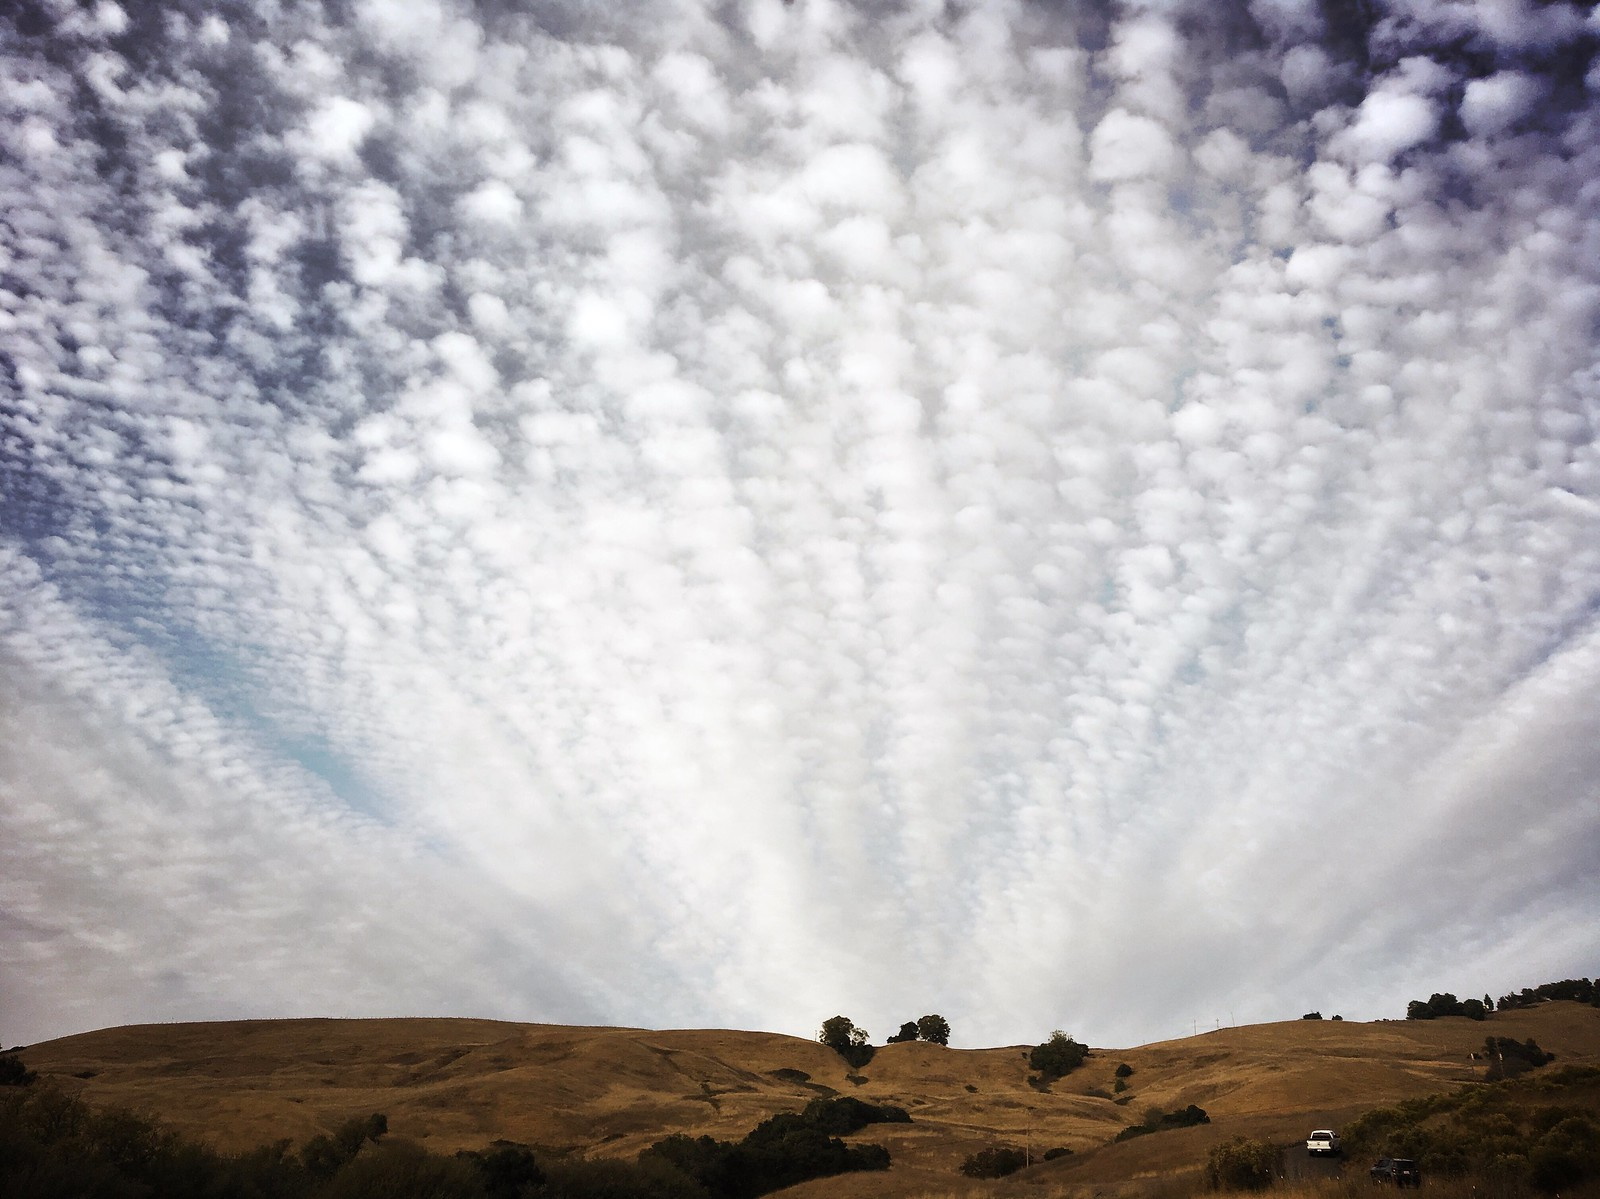 HUGE mackerel skies -- rain's in the forecast... | by lawatt